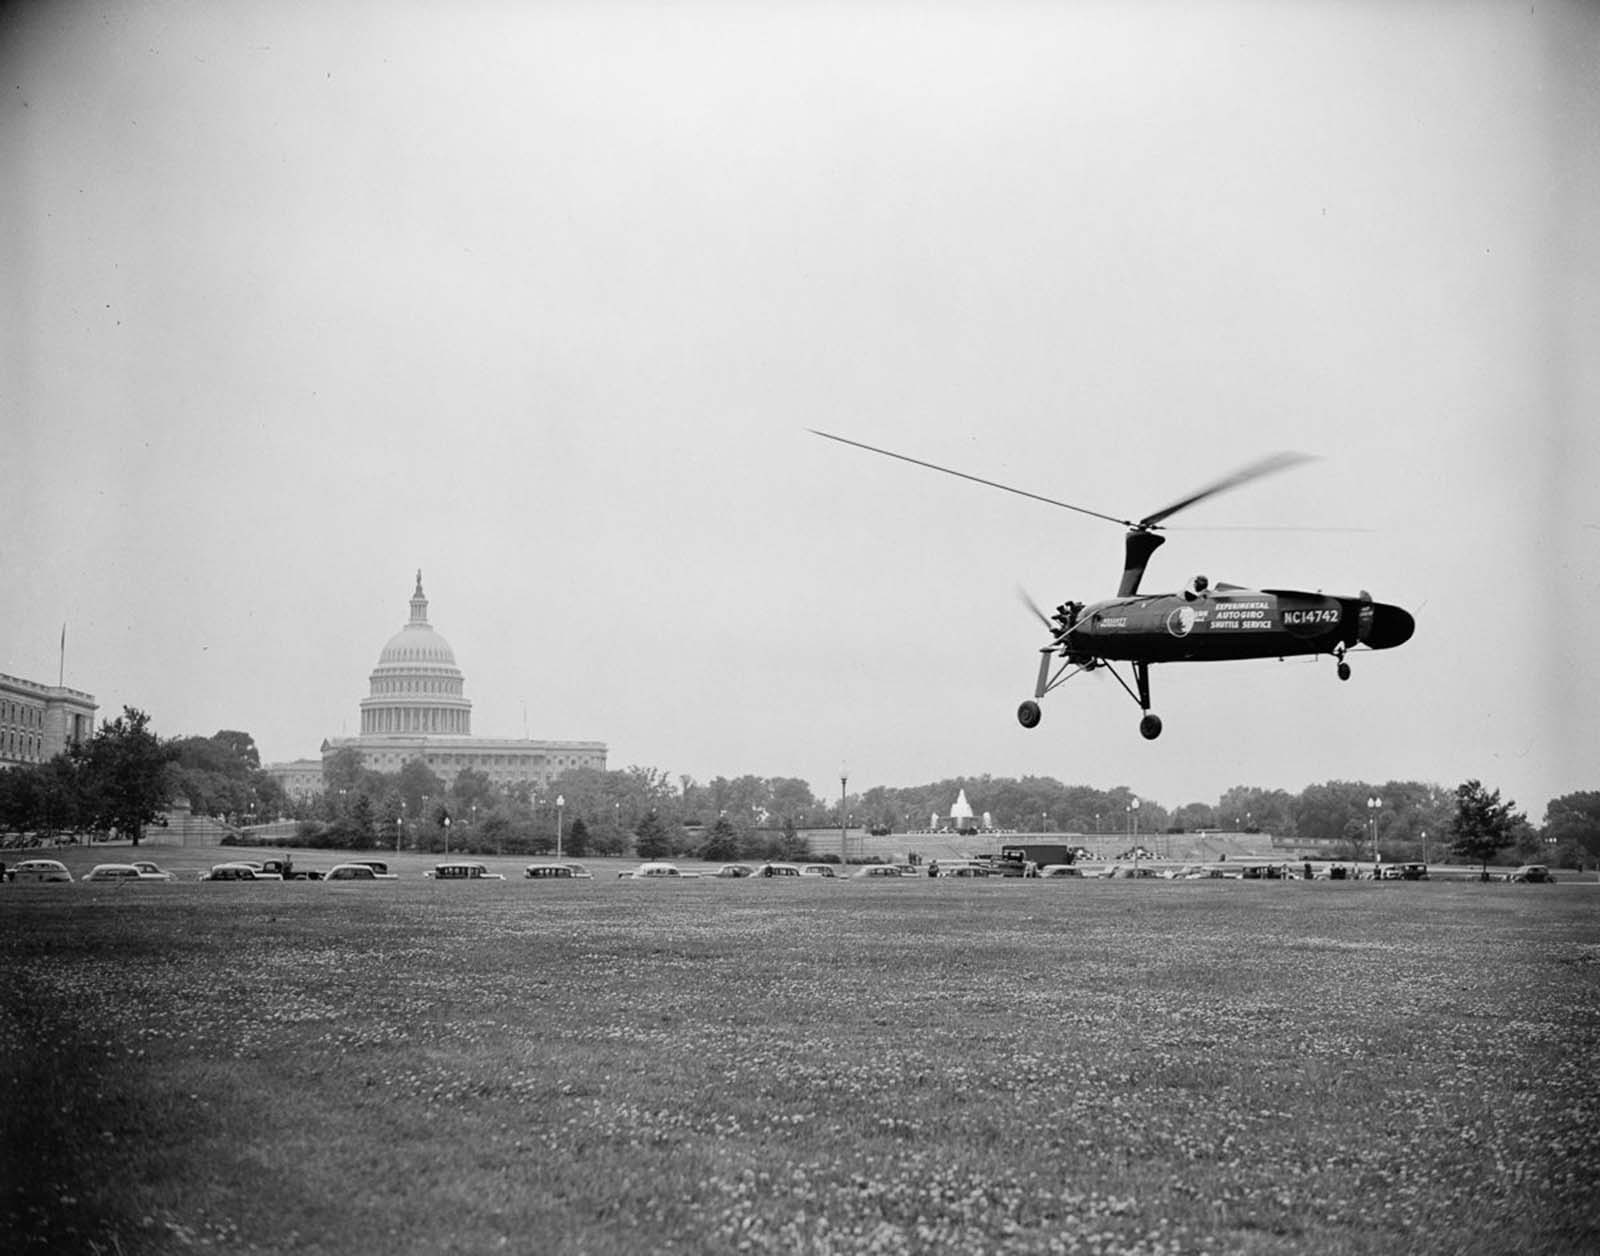 An autogyro lands on the grounds of the Washington, D.C. post office to demonstrate the feasibility of using autogyros to deliver mail. 1938.